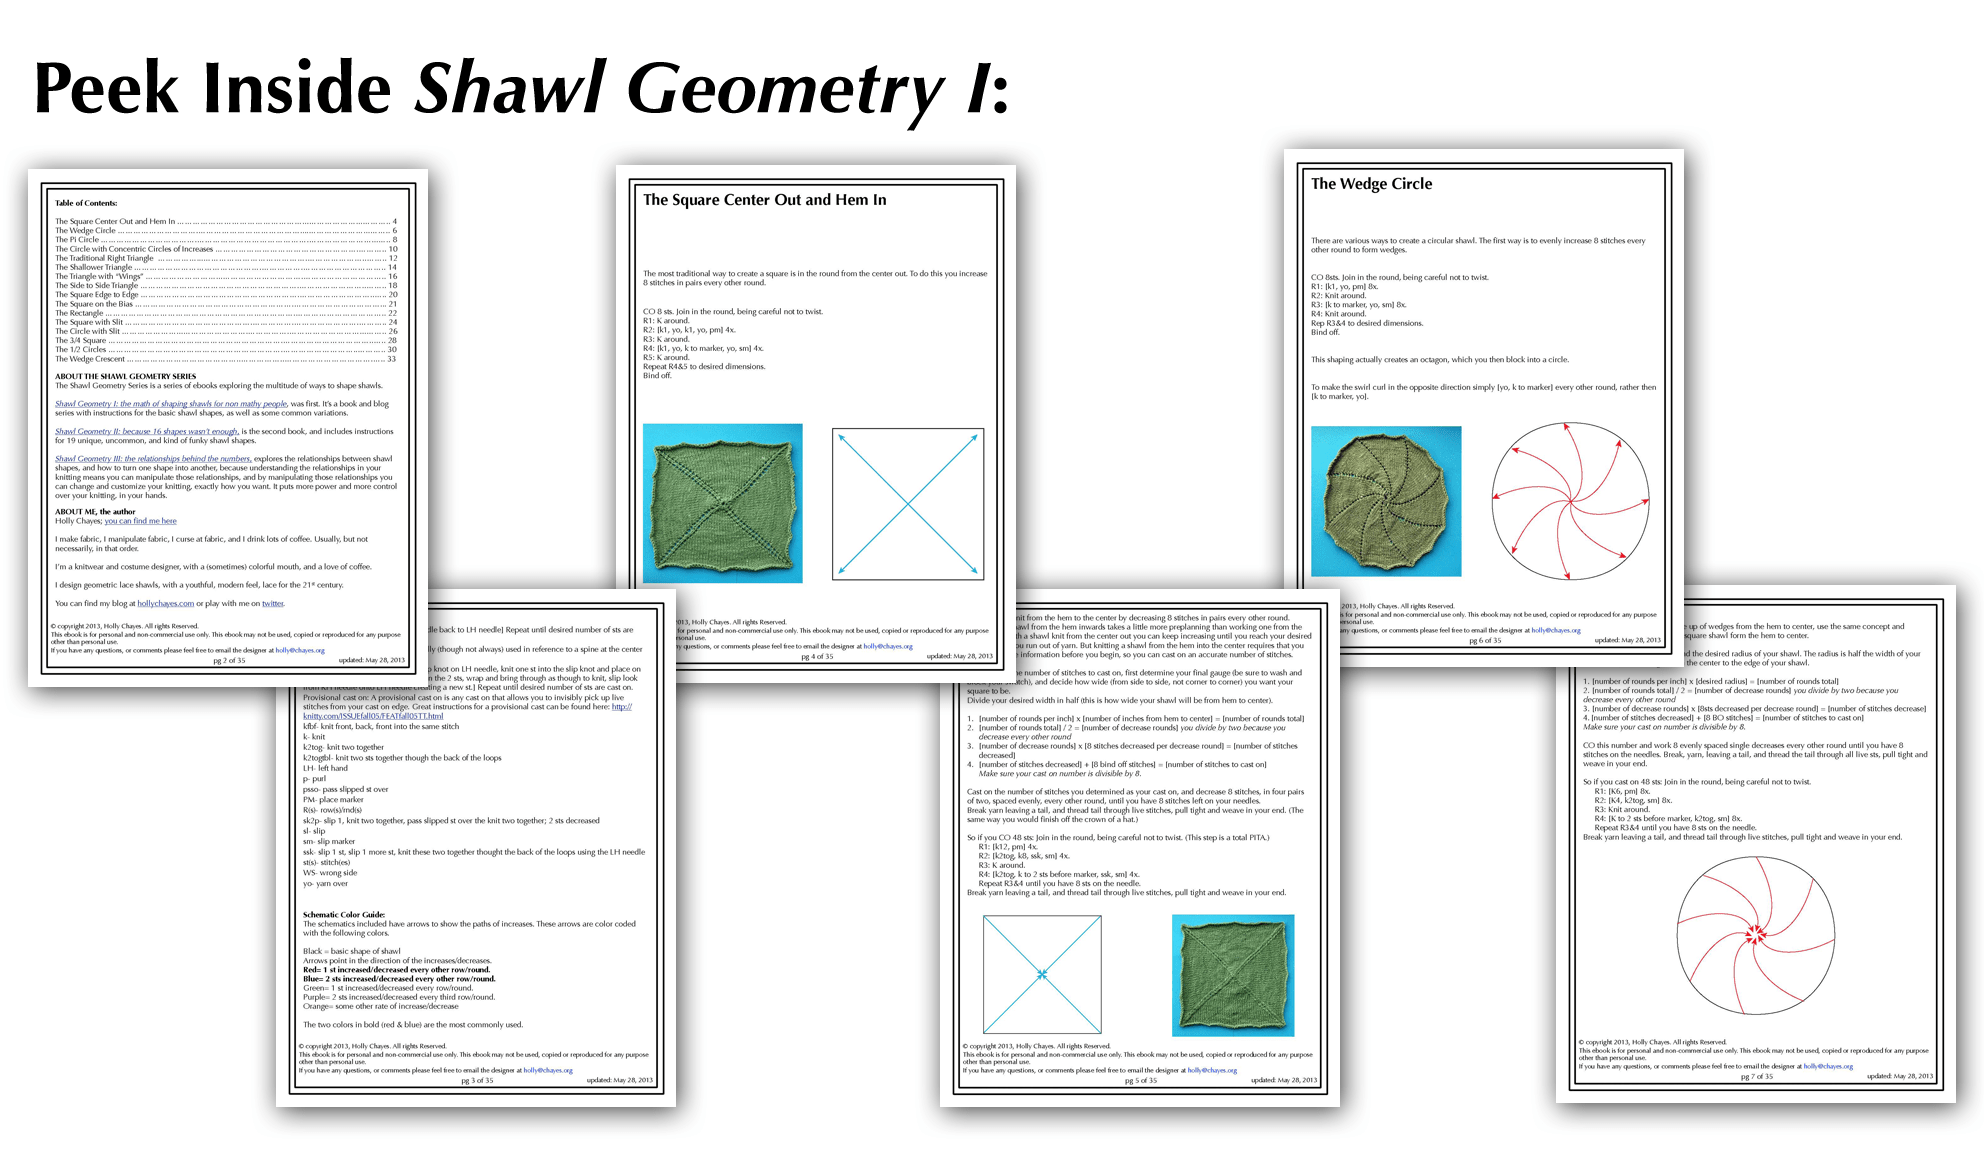 Holly Chayes The Shawl Geometry Books